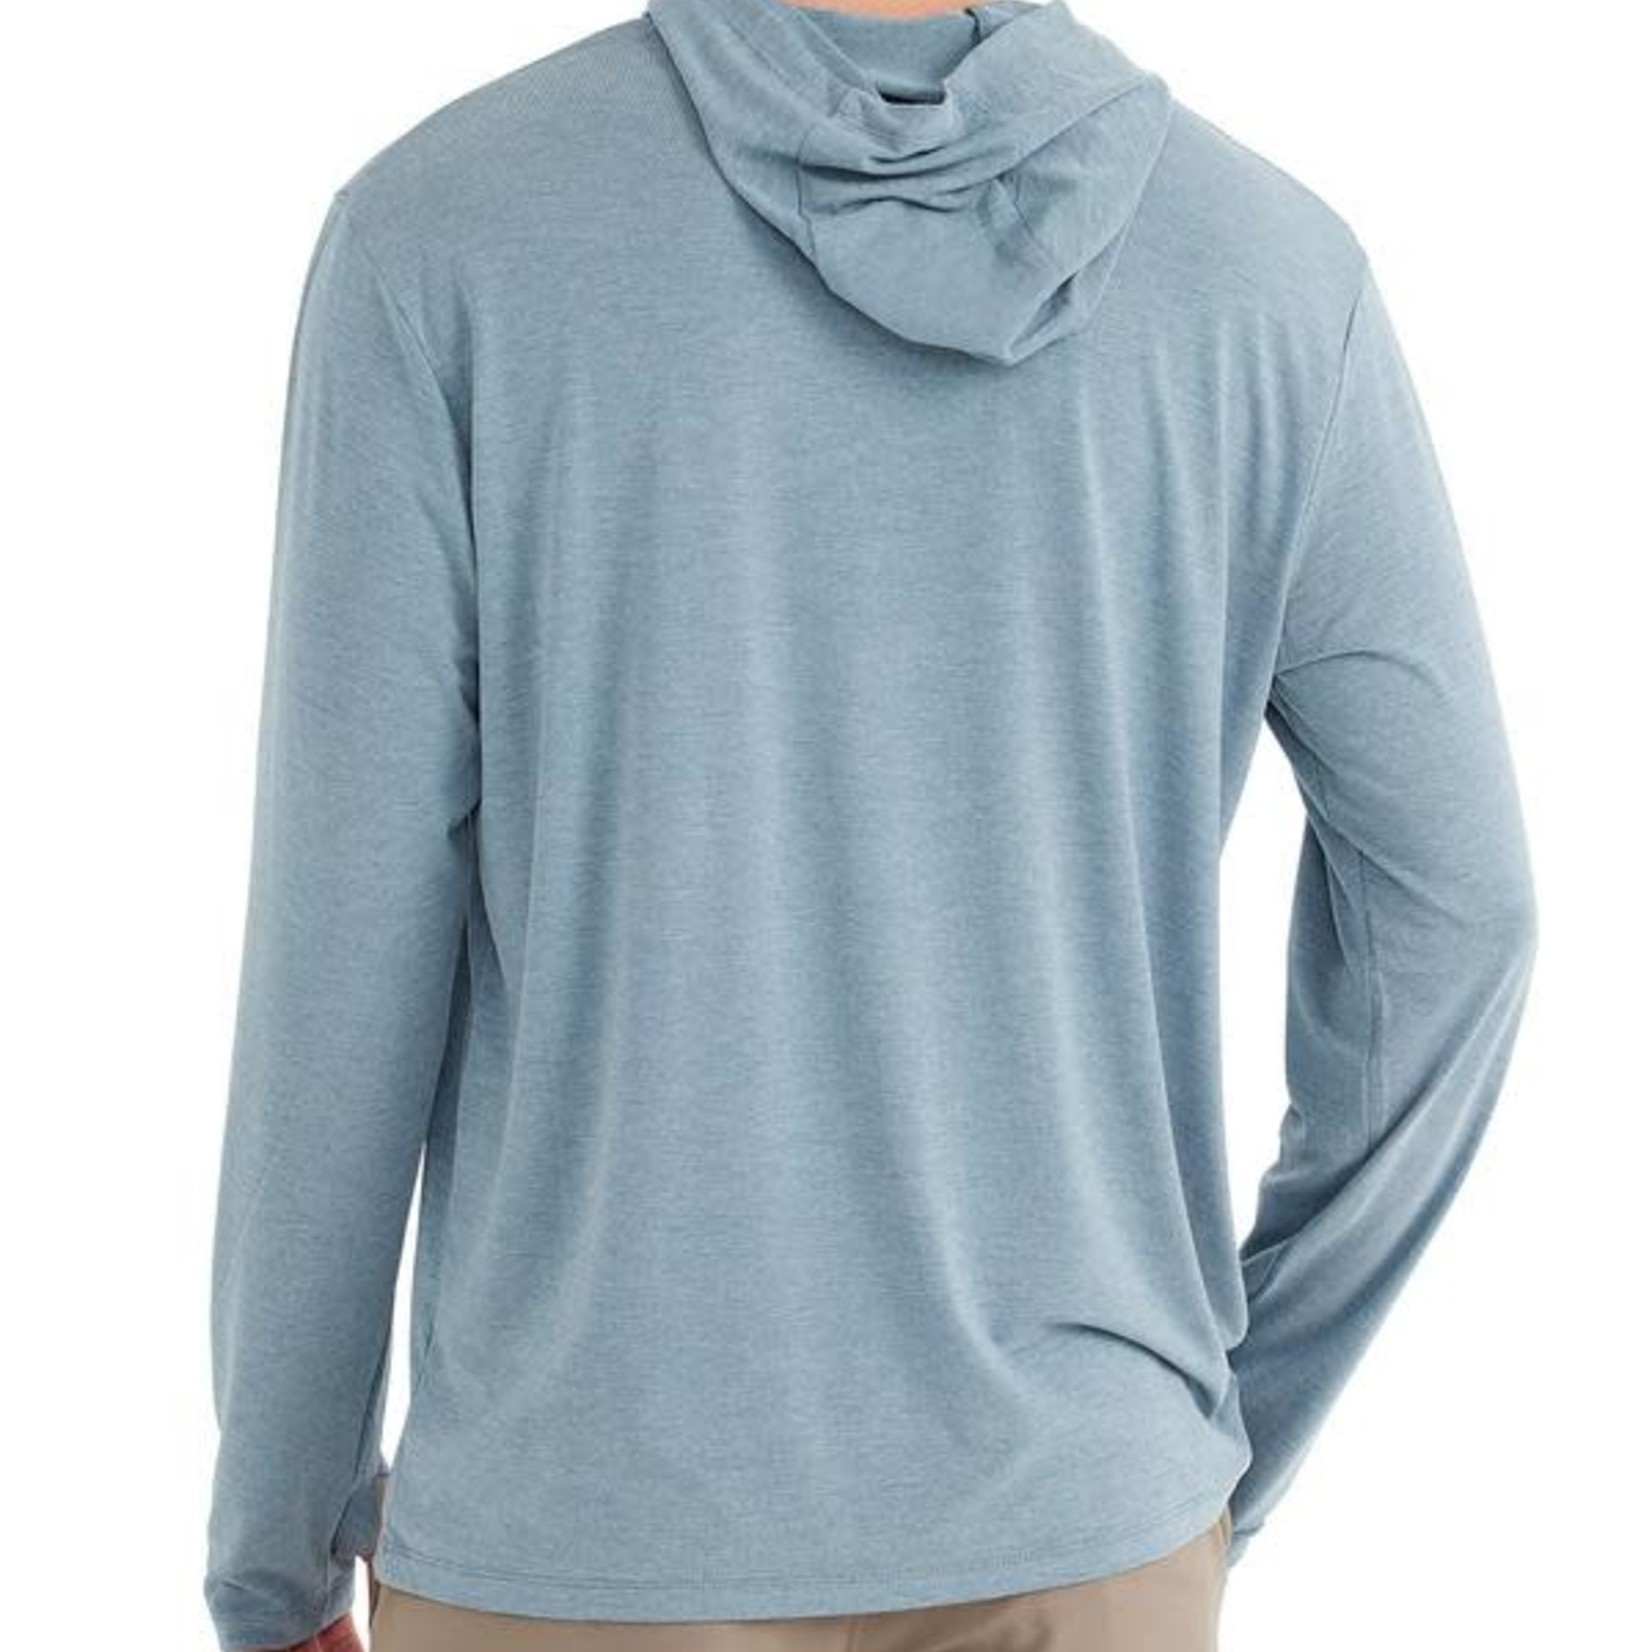 Free Fly Free Fly M's Bamboo Crossover Hoody